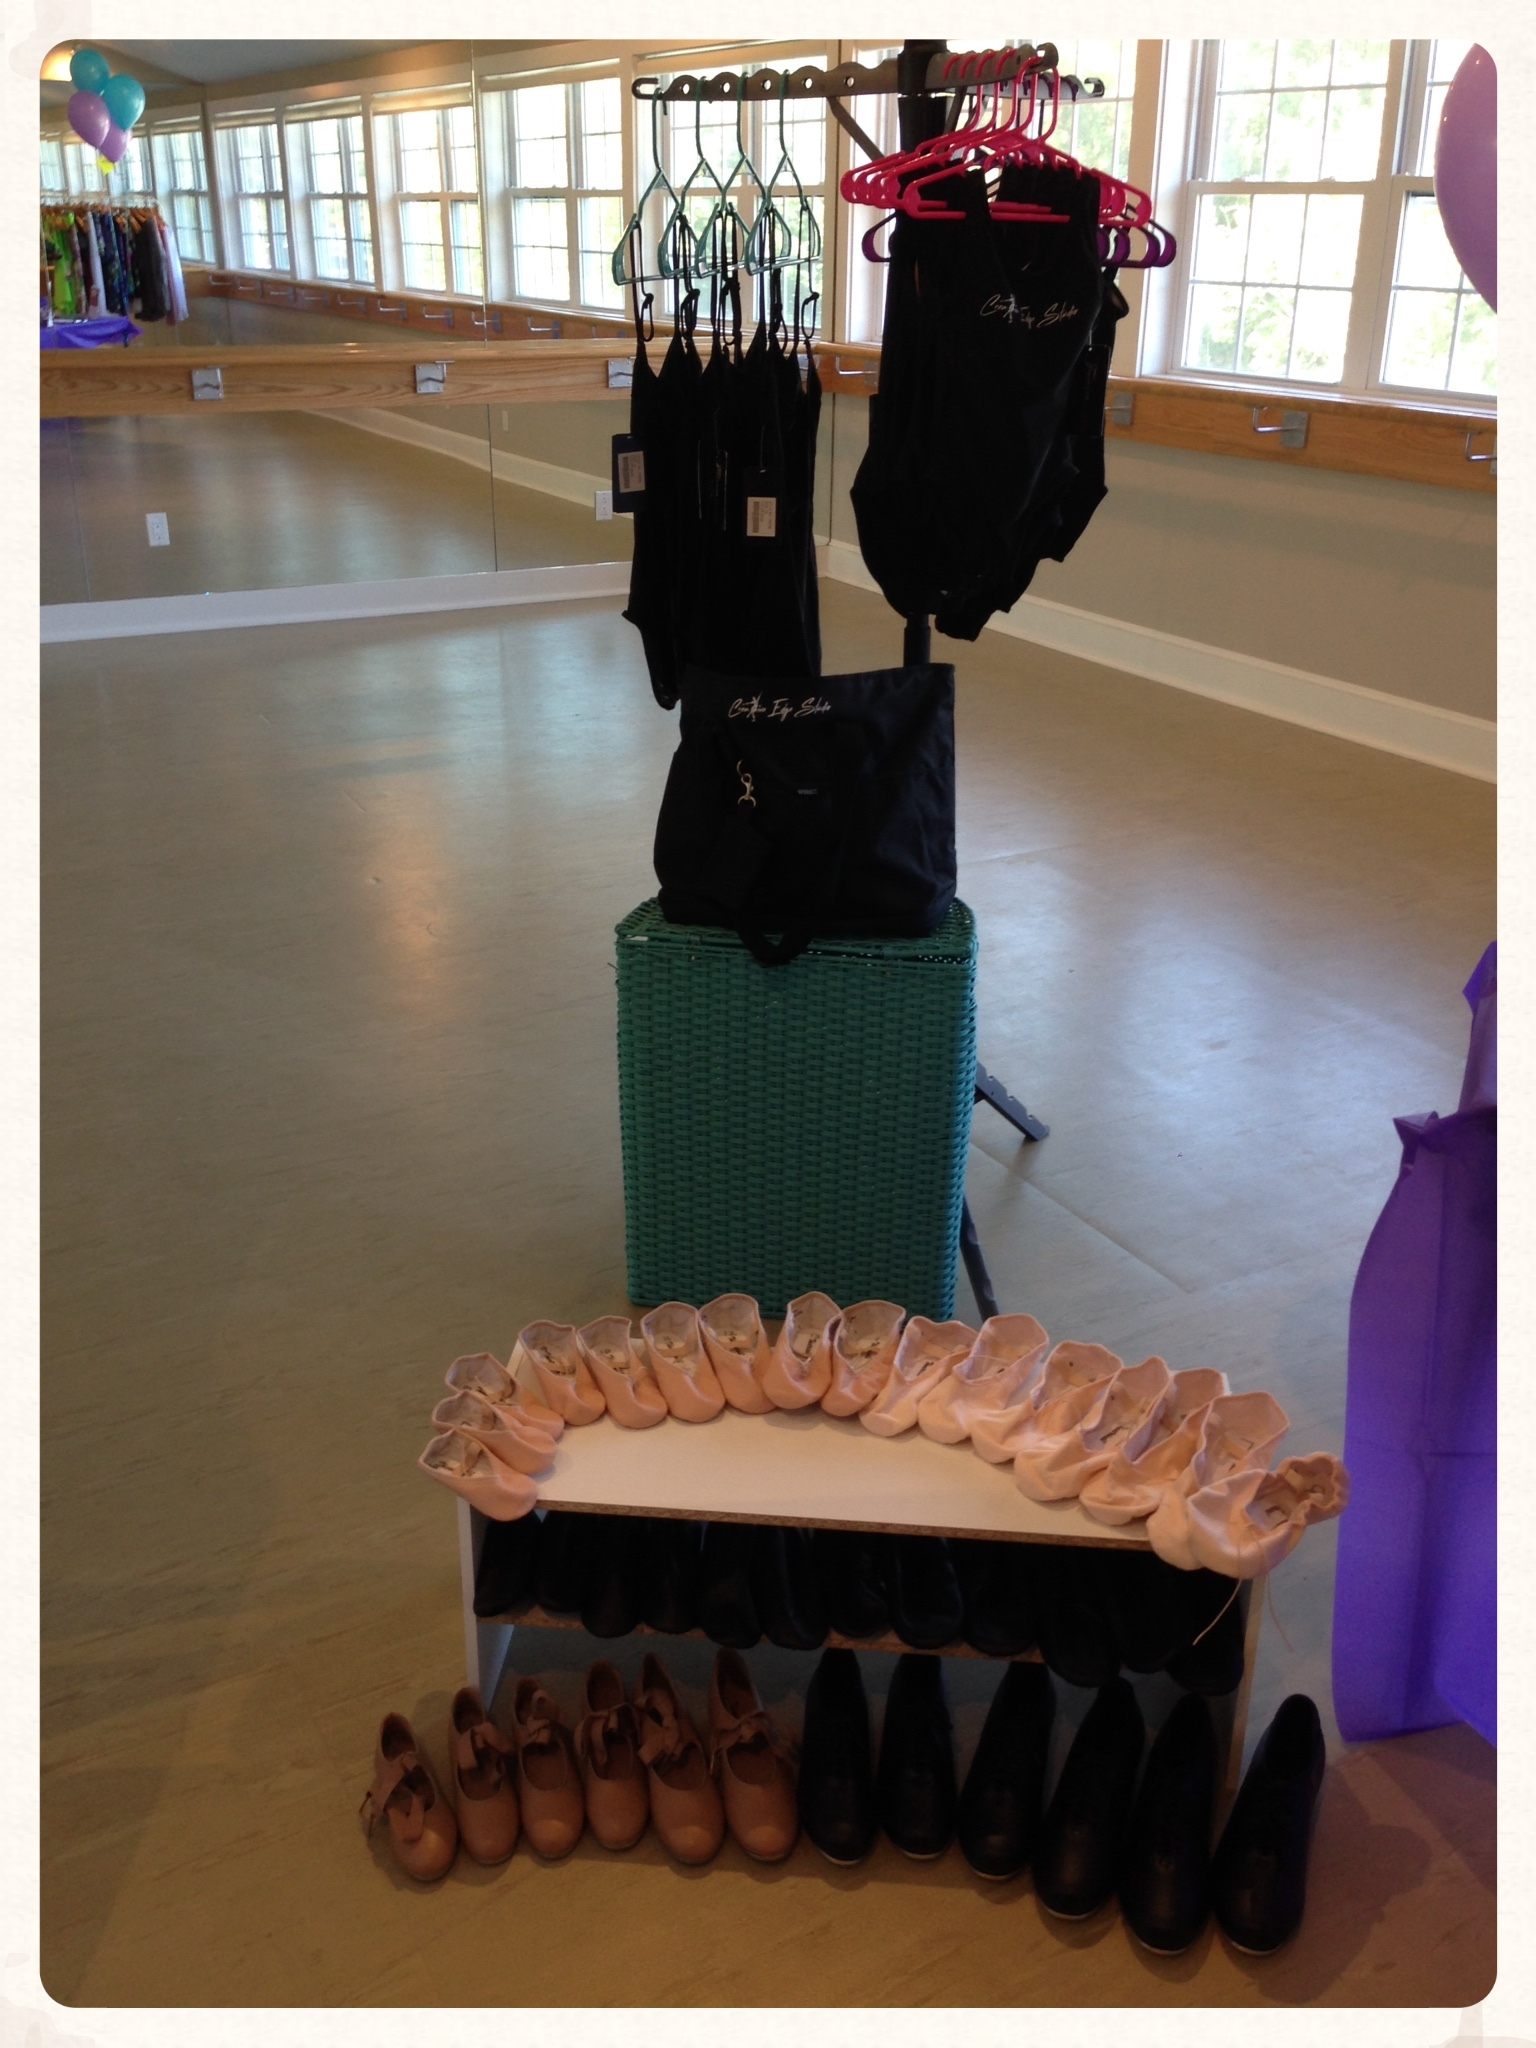 Creative Edge Dance Studio East Hampton Montauk New York Laura Sisco